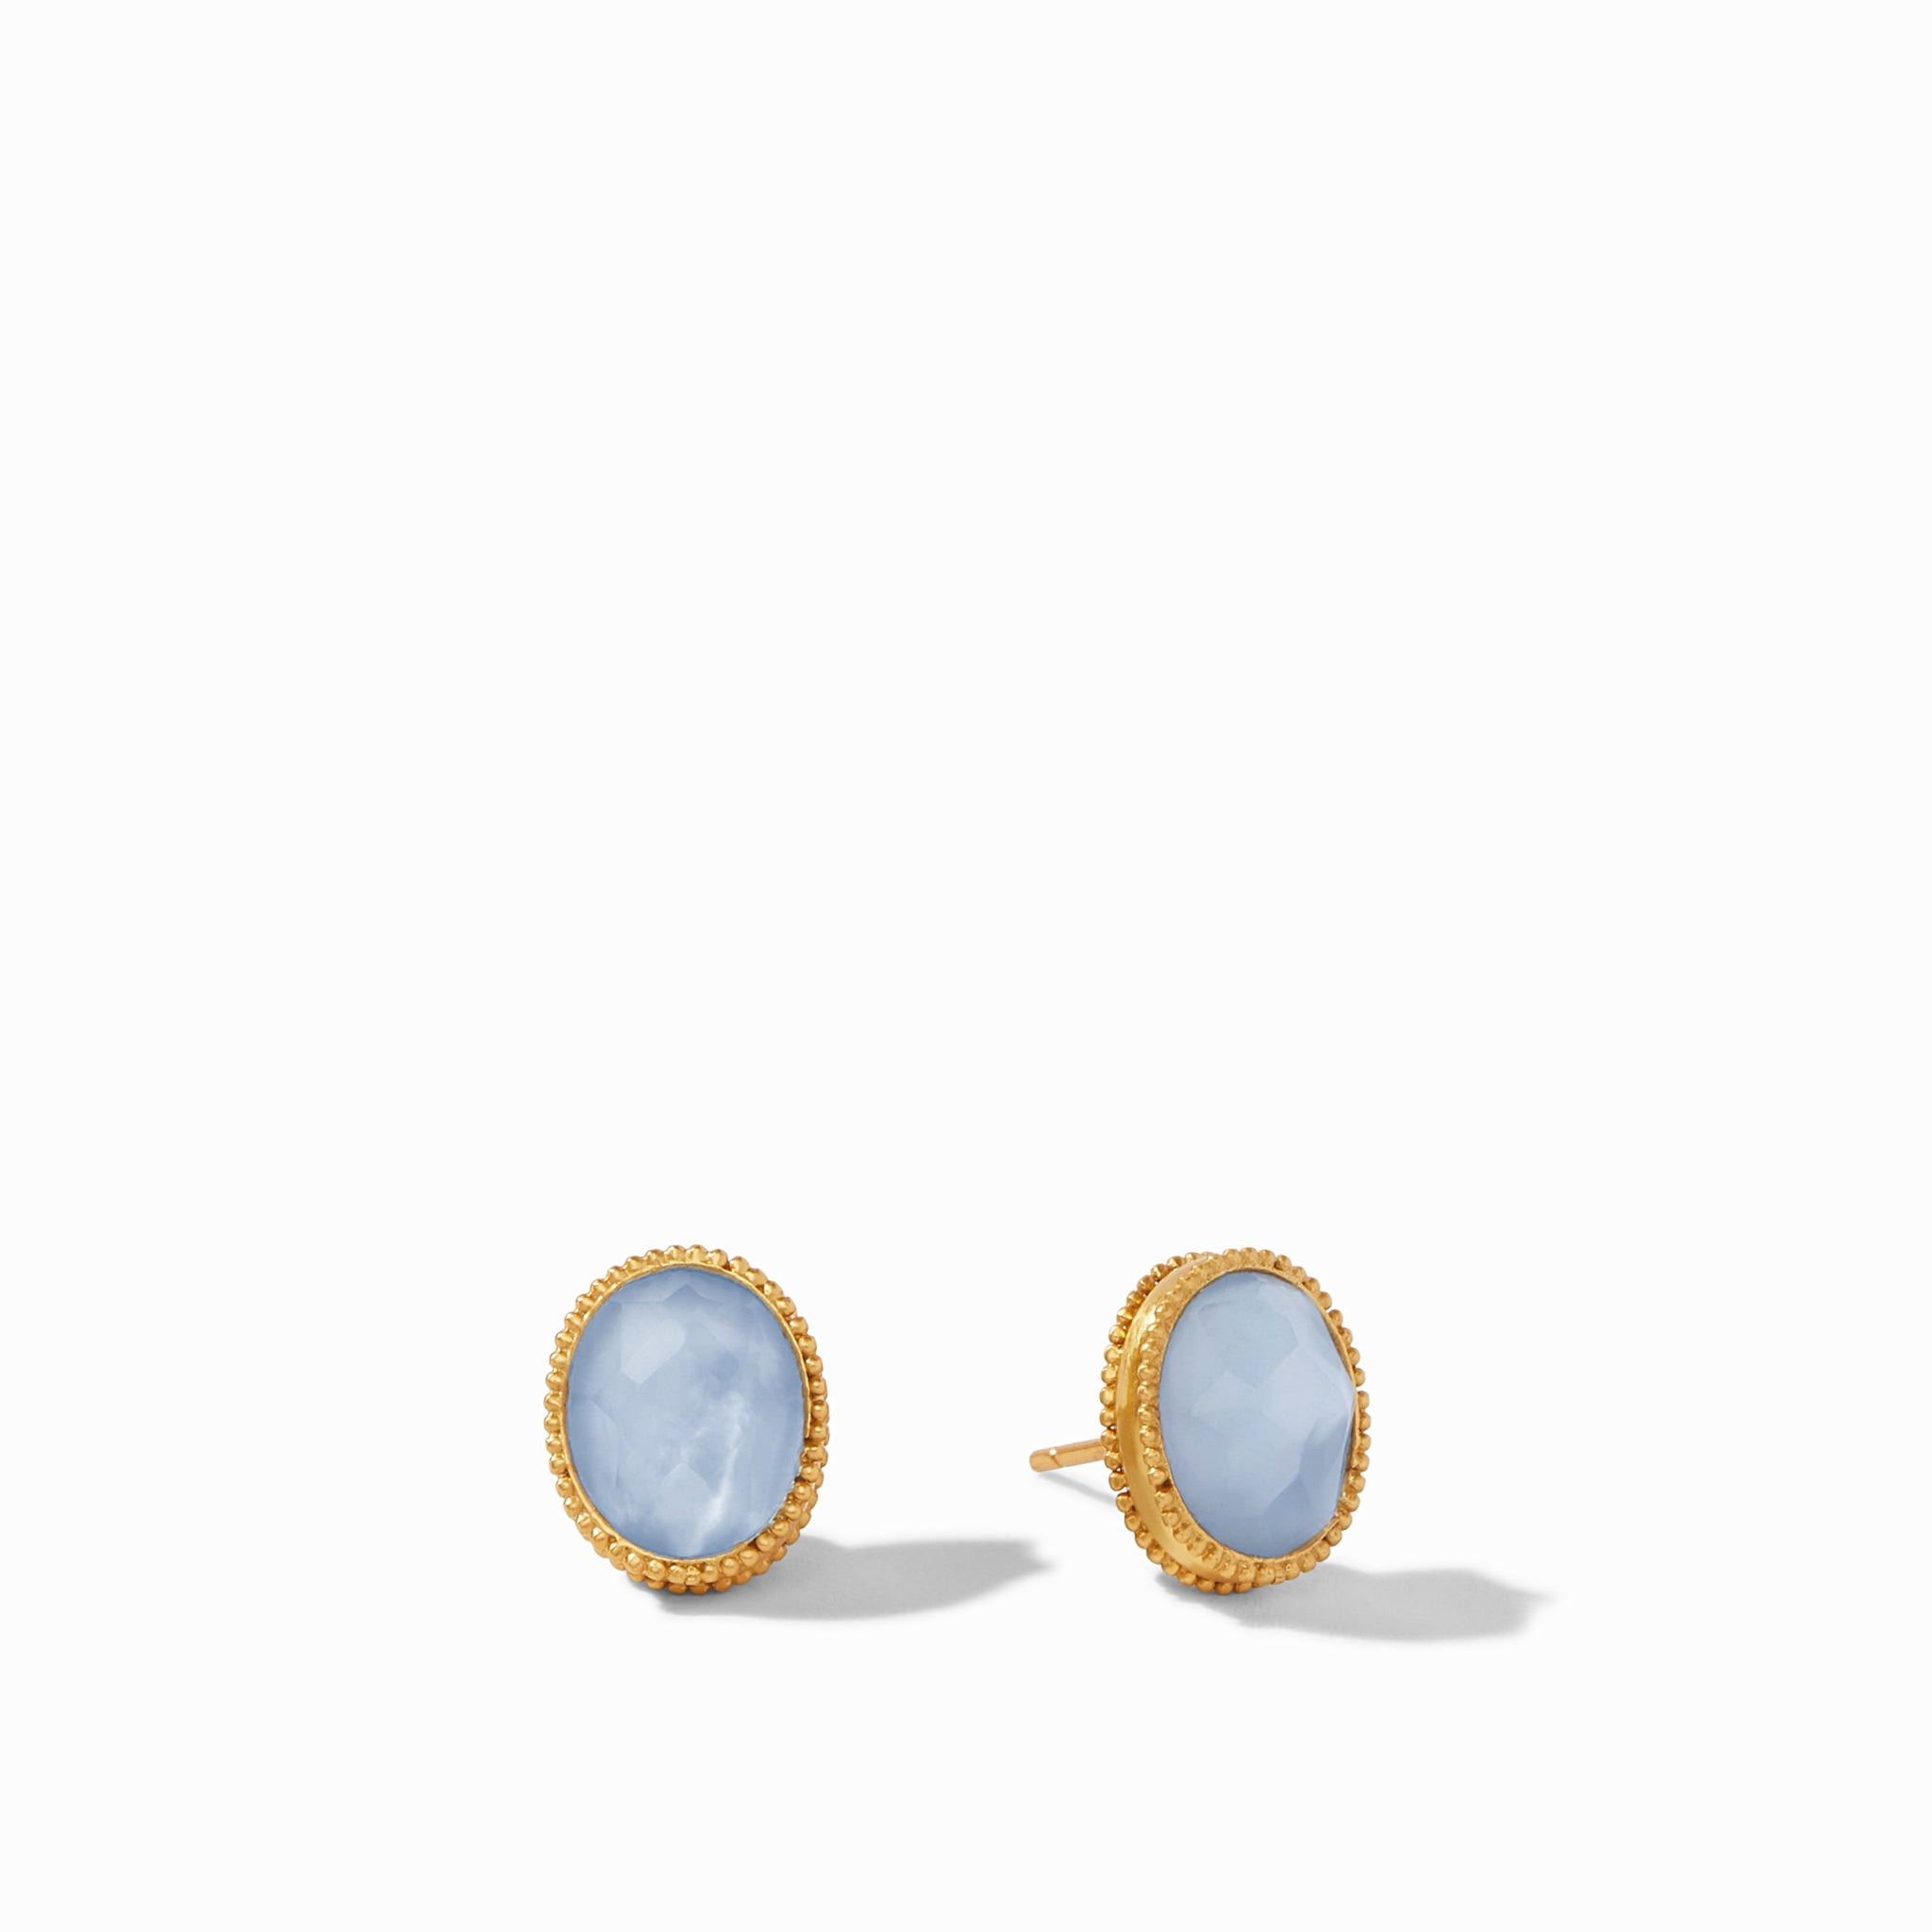 Iridescent Chalcedony Blue, gift guide 2020